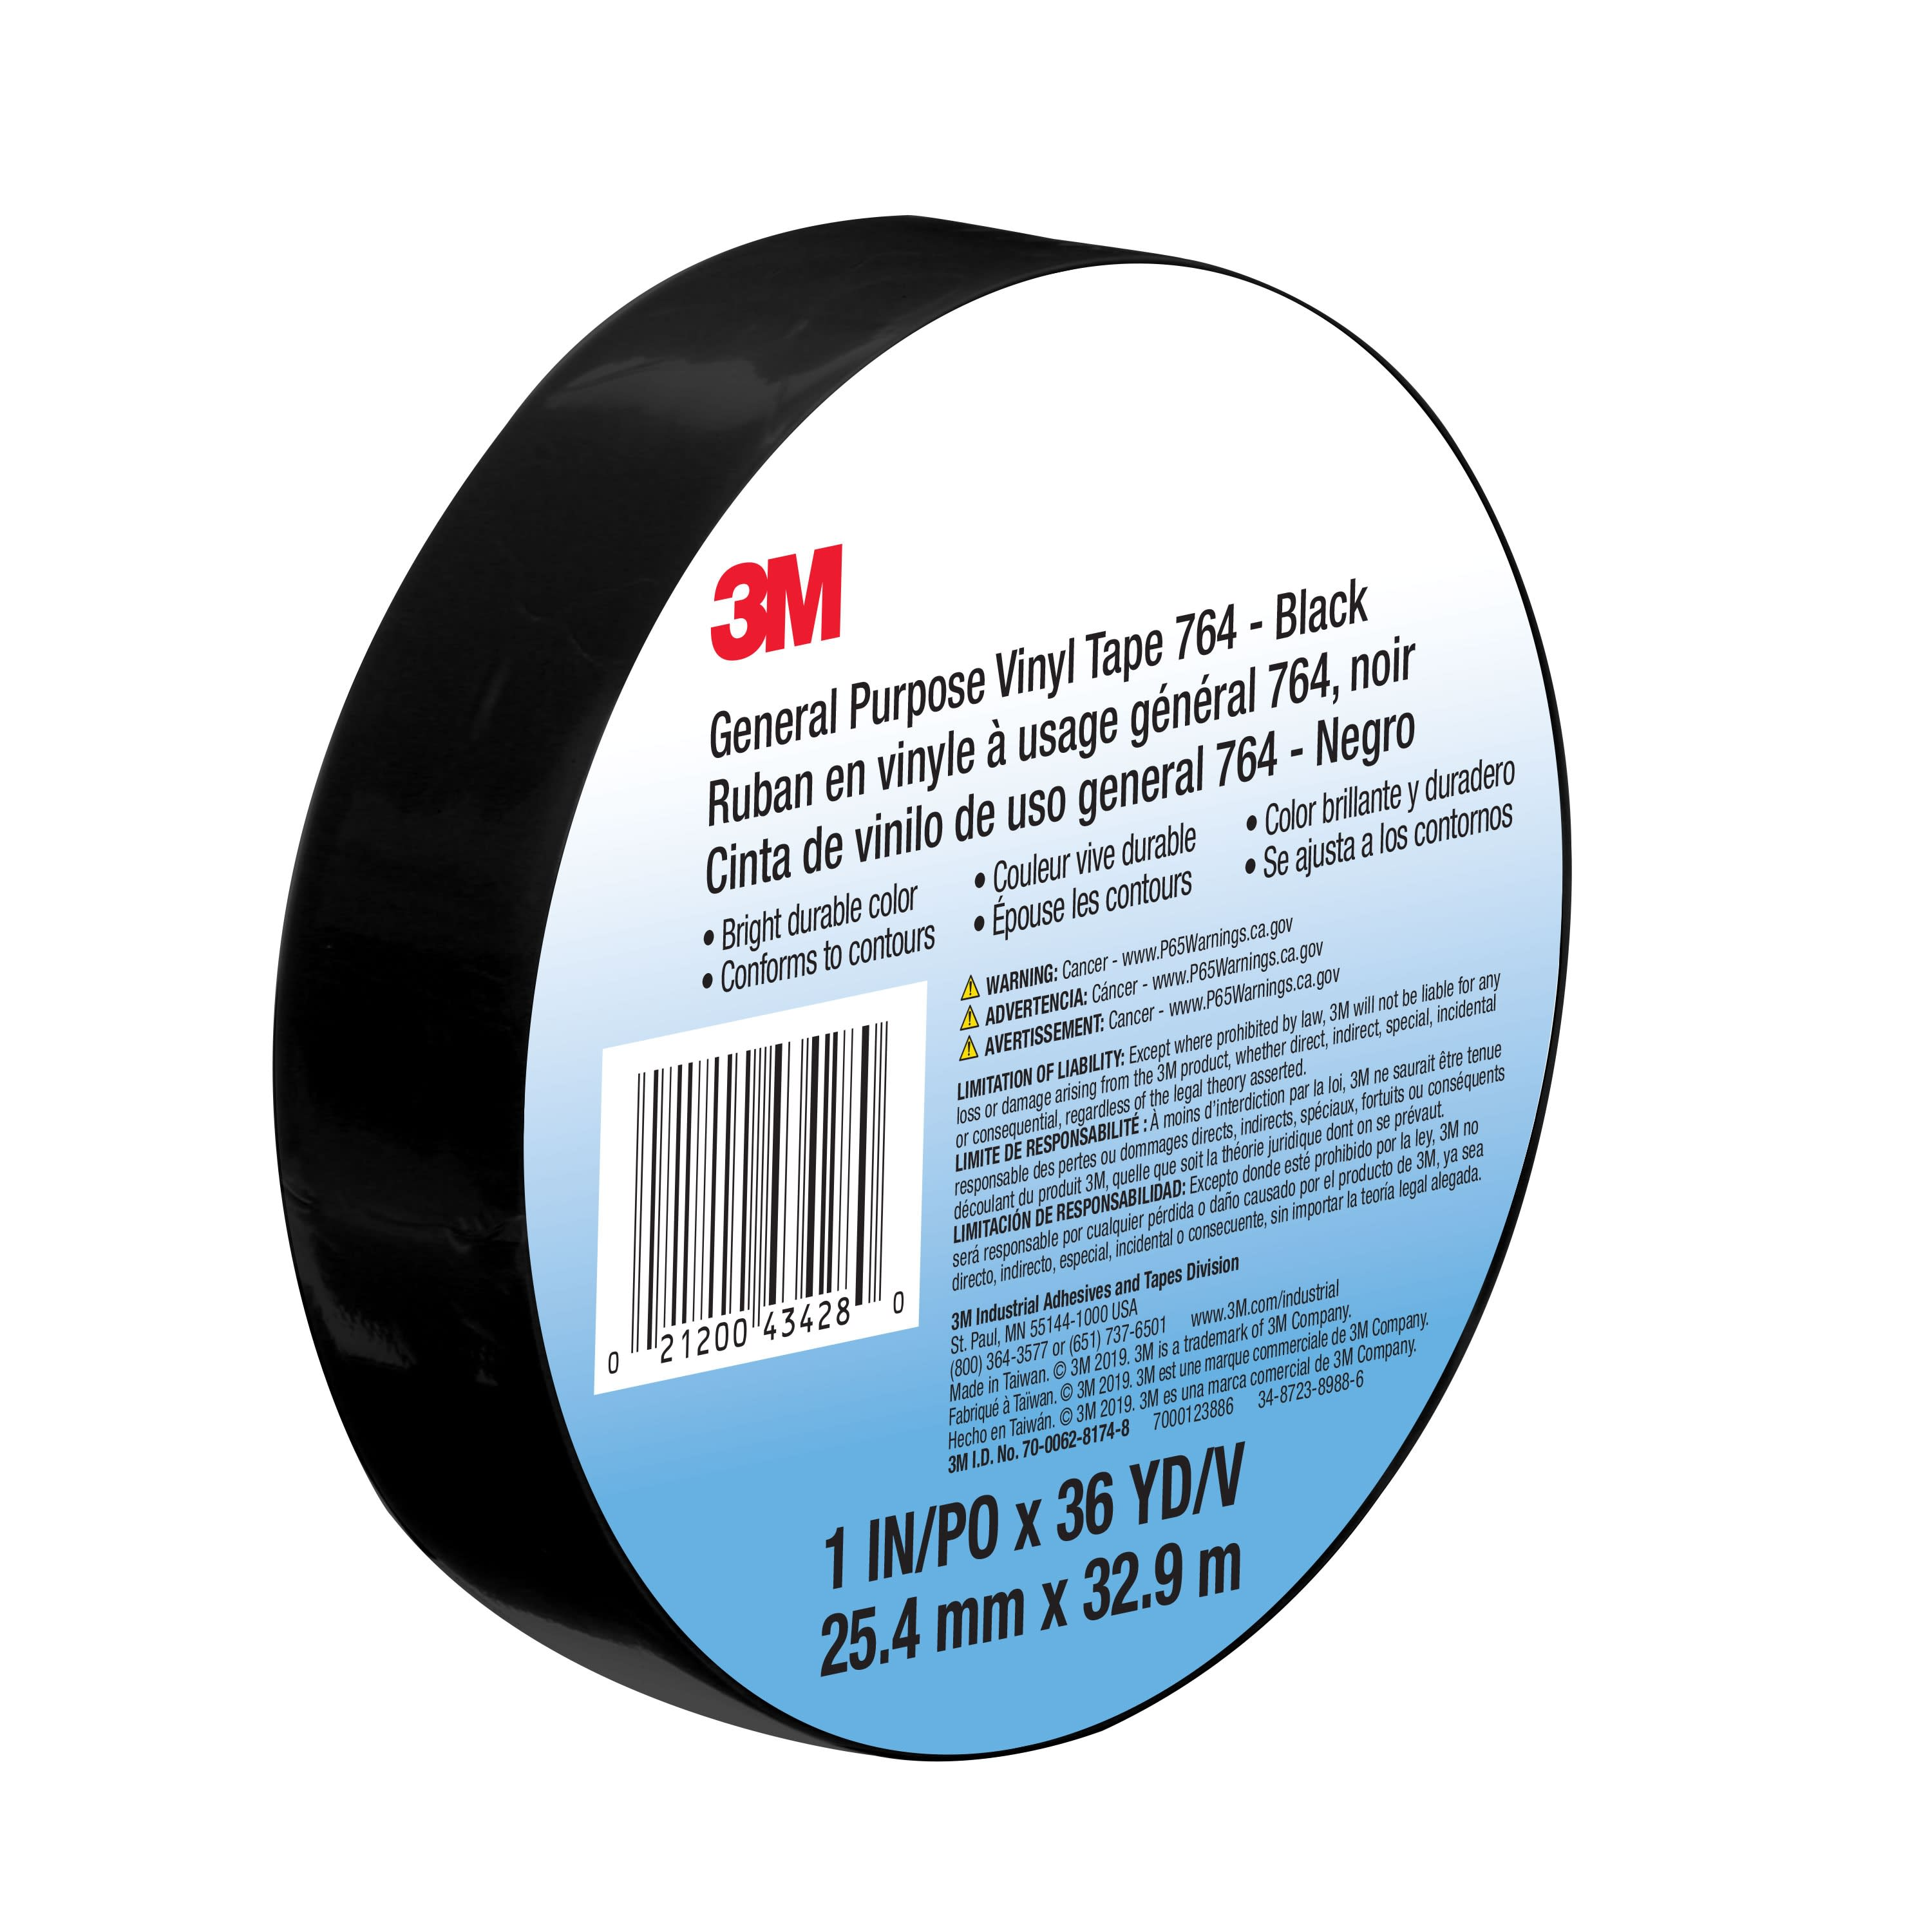 3M™ General Purpose Vinyl Tape 764, Black, 1 in x 36 yd, 5 mil, 36 Roll/Case, Individually Wrapped Conveniently Packaged